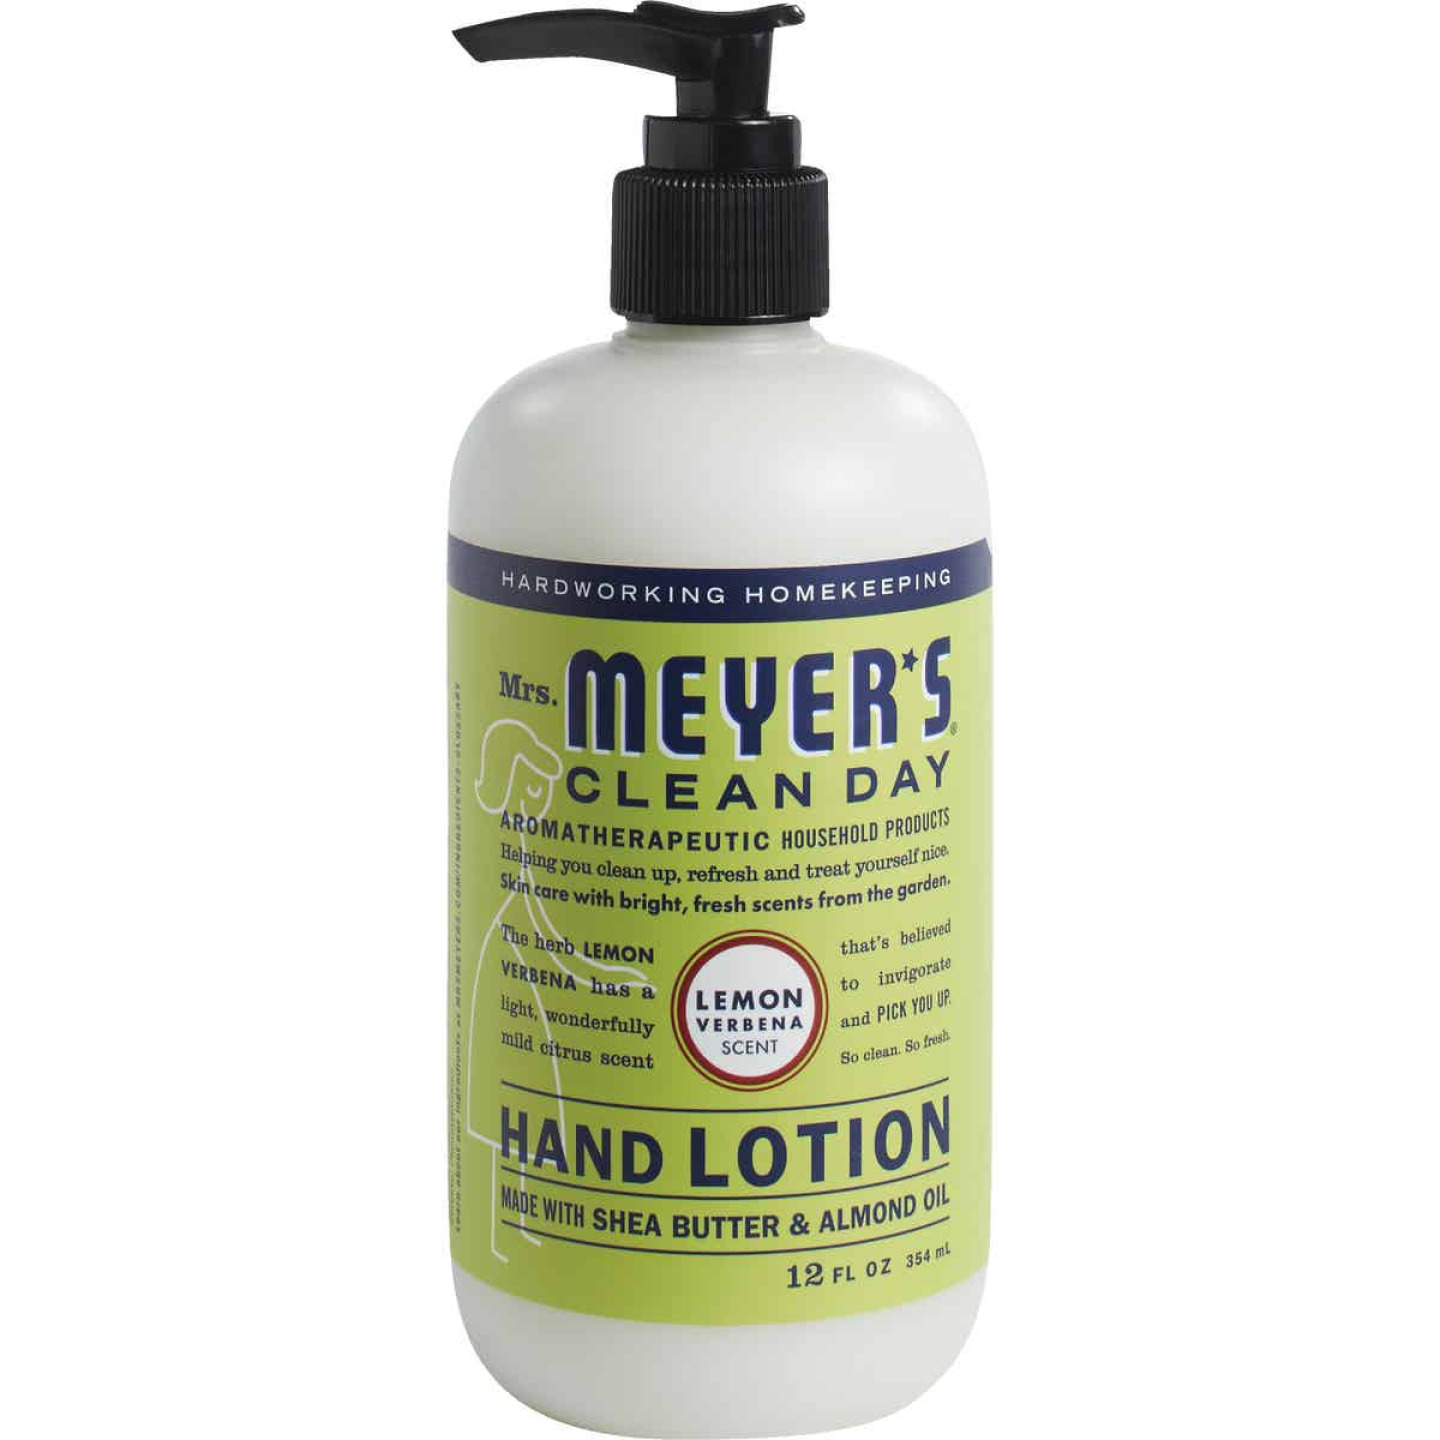 Mrs. Meyer's Clean Day 12 Oz. Lemon Verbena Hand Lotion Image 1